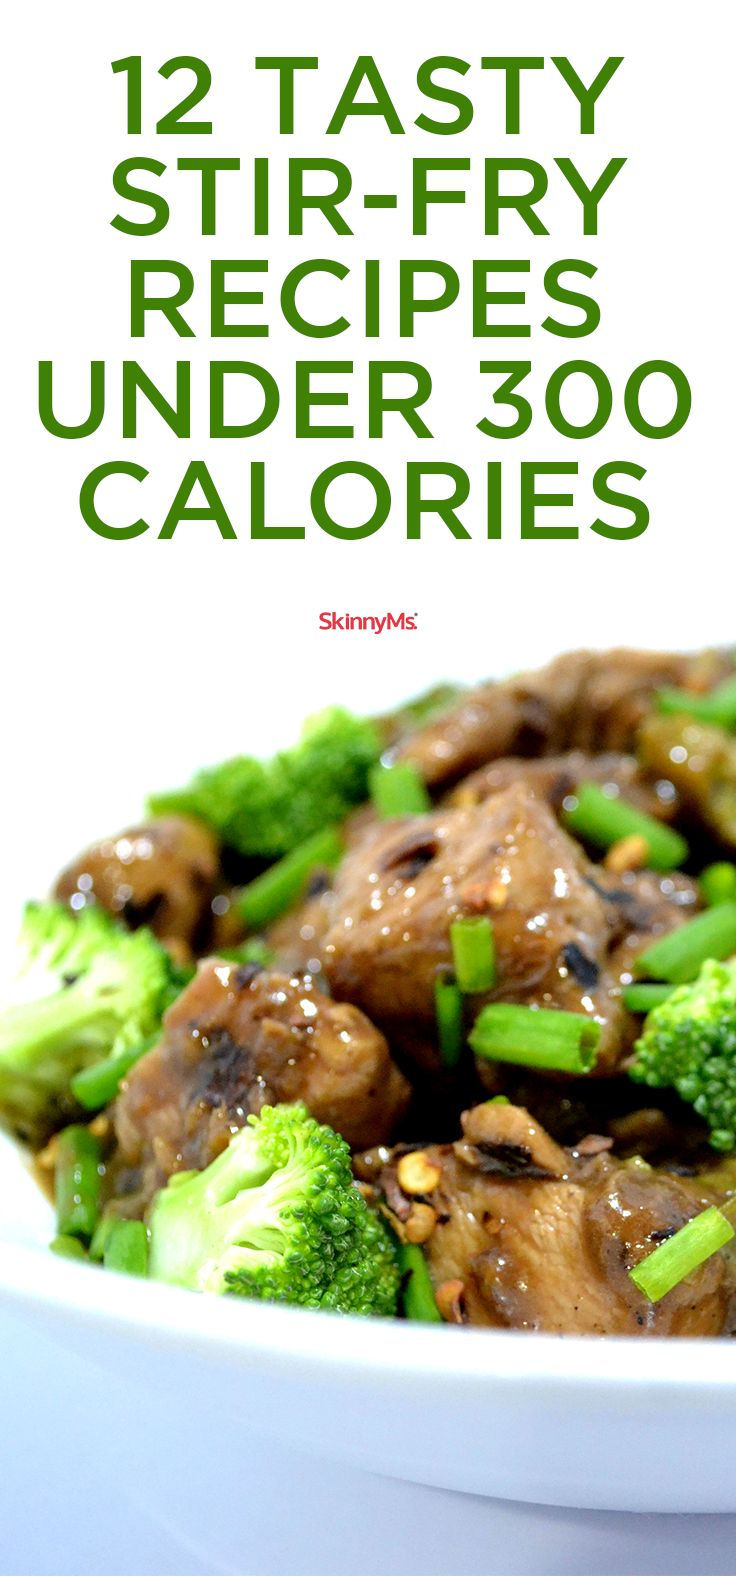 Stir things up with these 12 Tasty Stir-Fry Recipes Under 300 Calories!